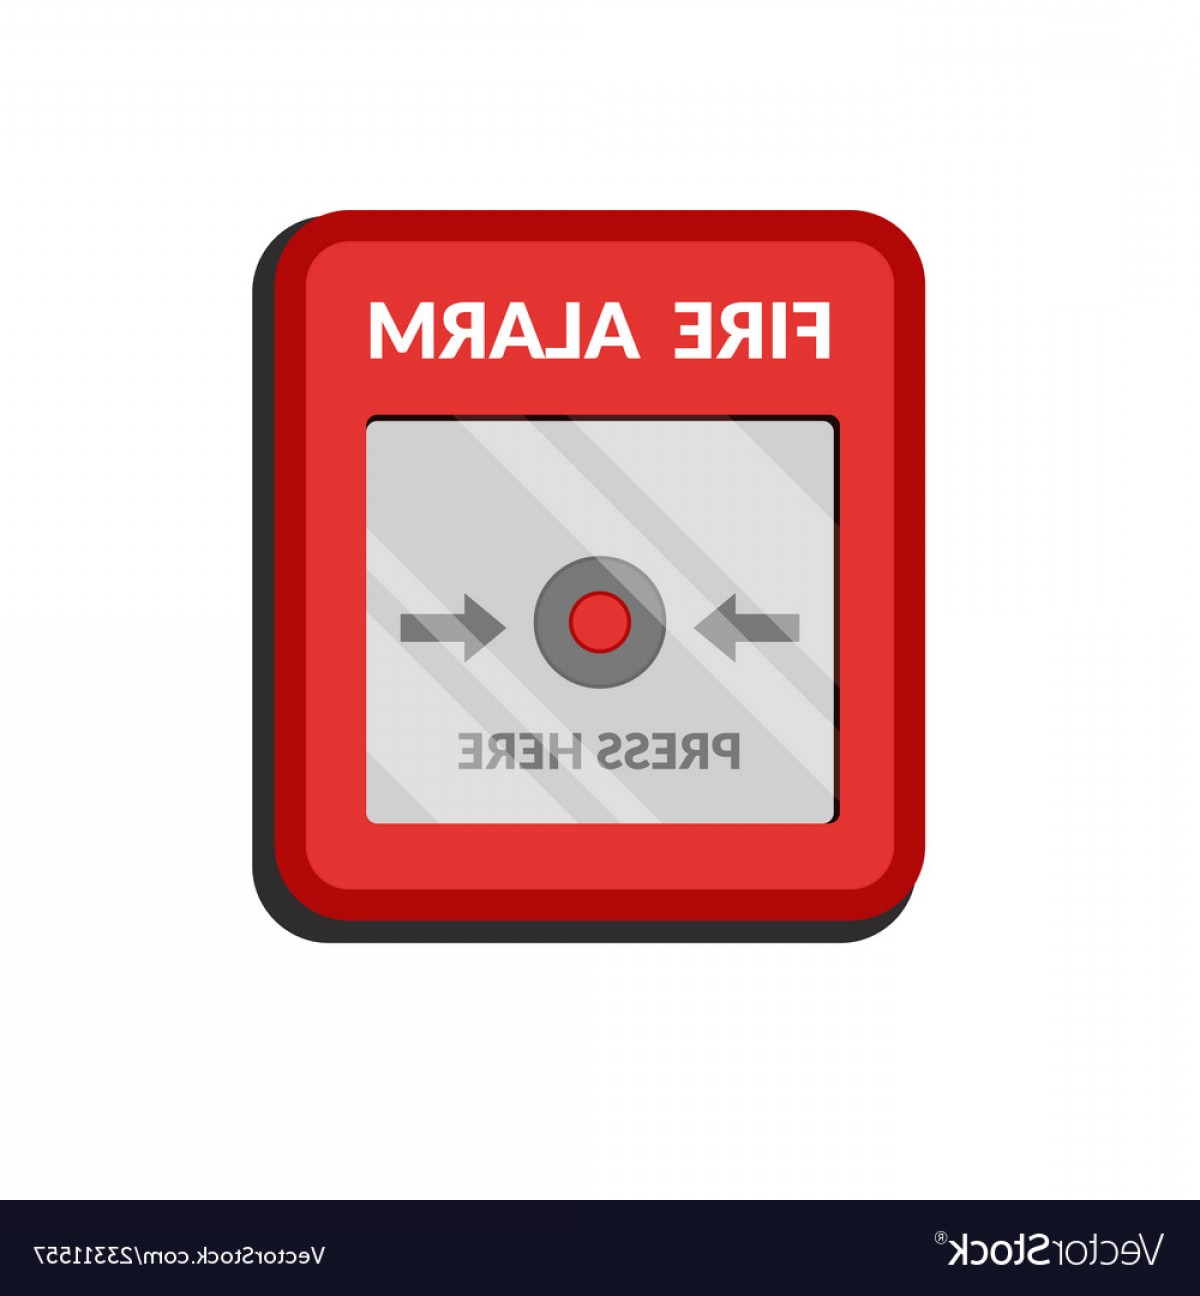 Fire Alarm Vector: Fire Alarm System Press Button Fire Safety Box Vector